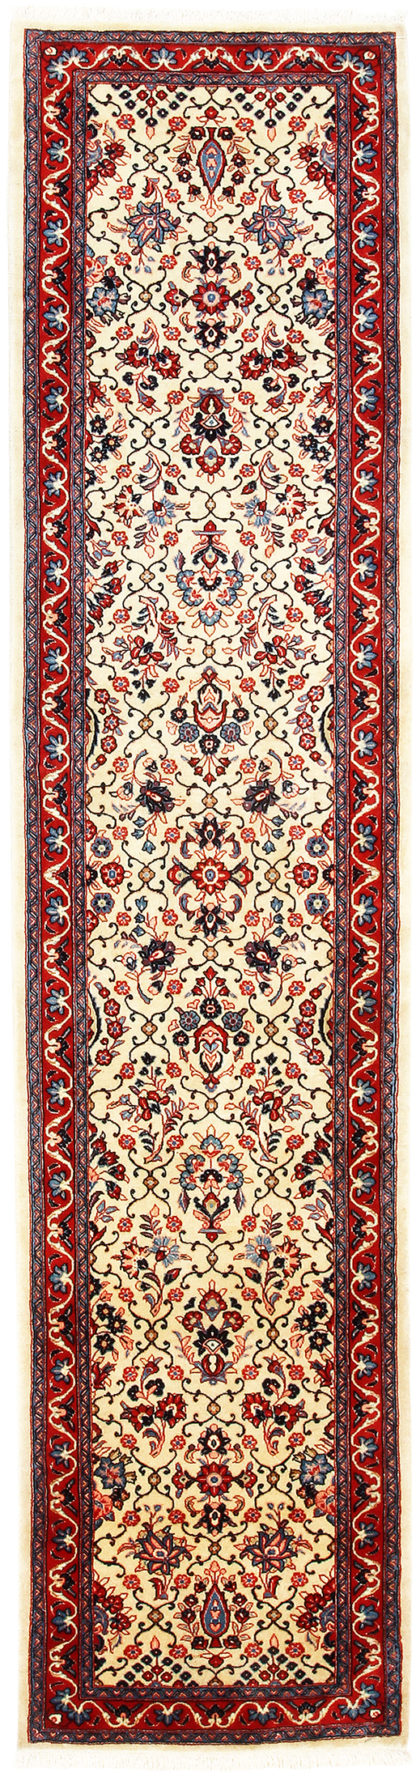 Fine Persian Sarouk Runner 3x12 Ivory Red Area Rug